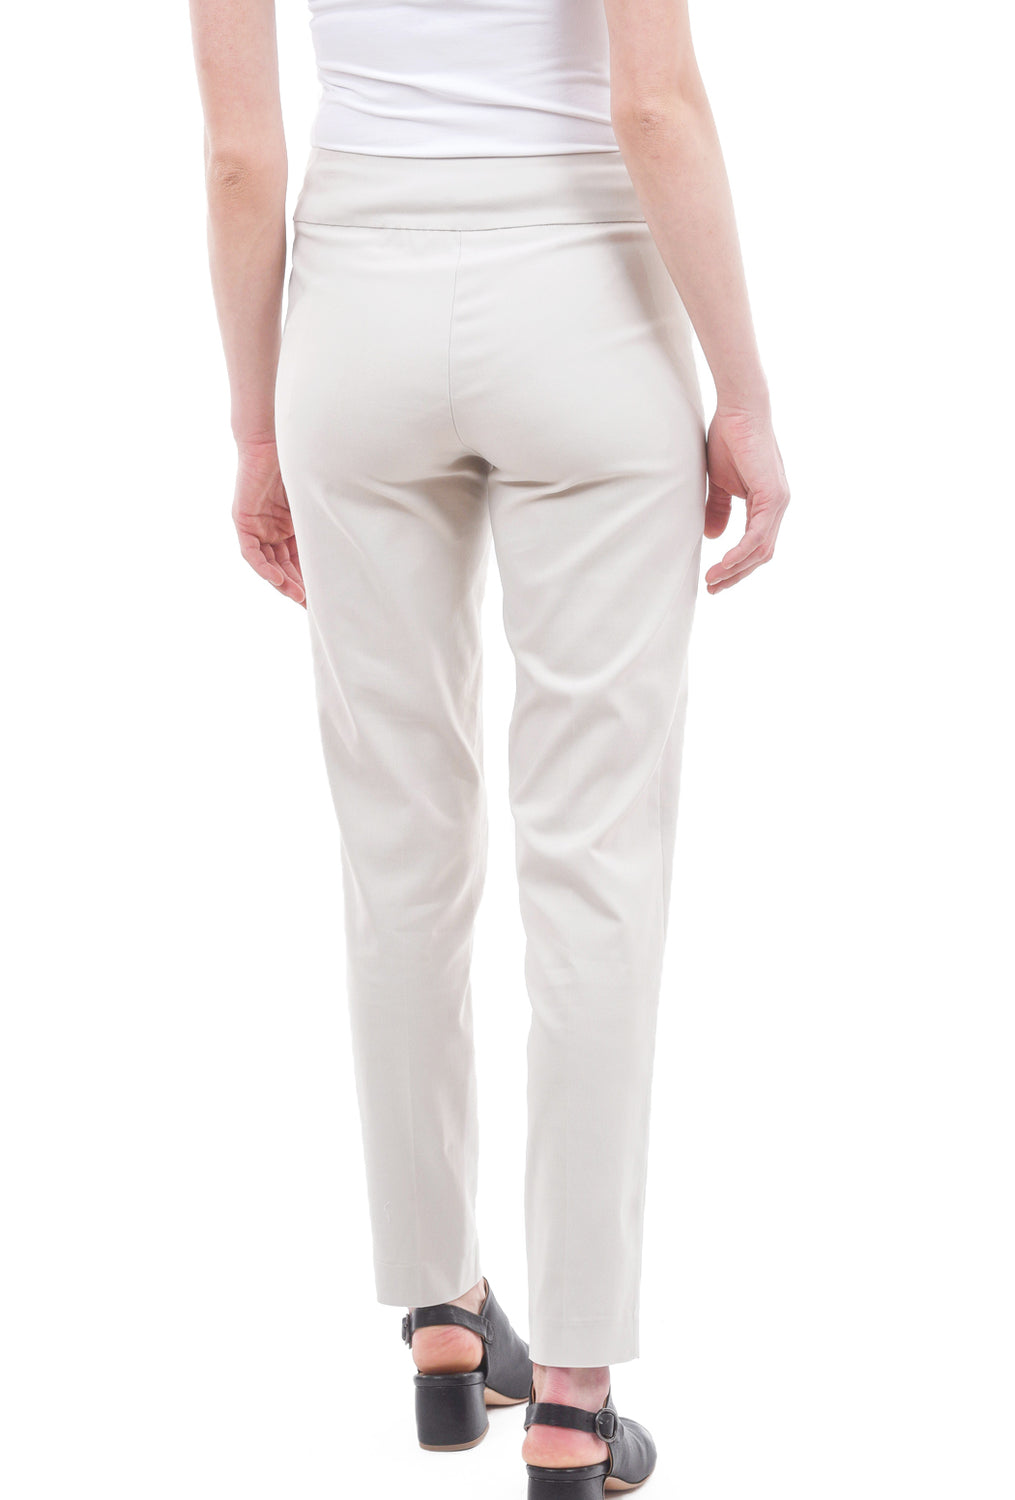 Estelle & Finn EF Straight-Leg Pants, Sand